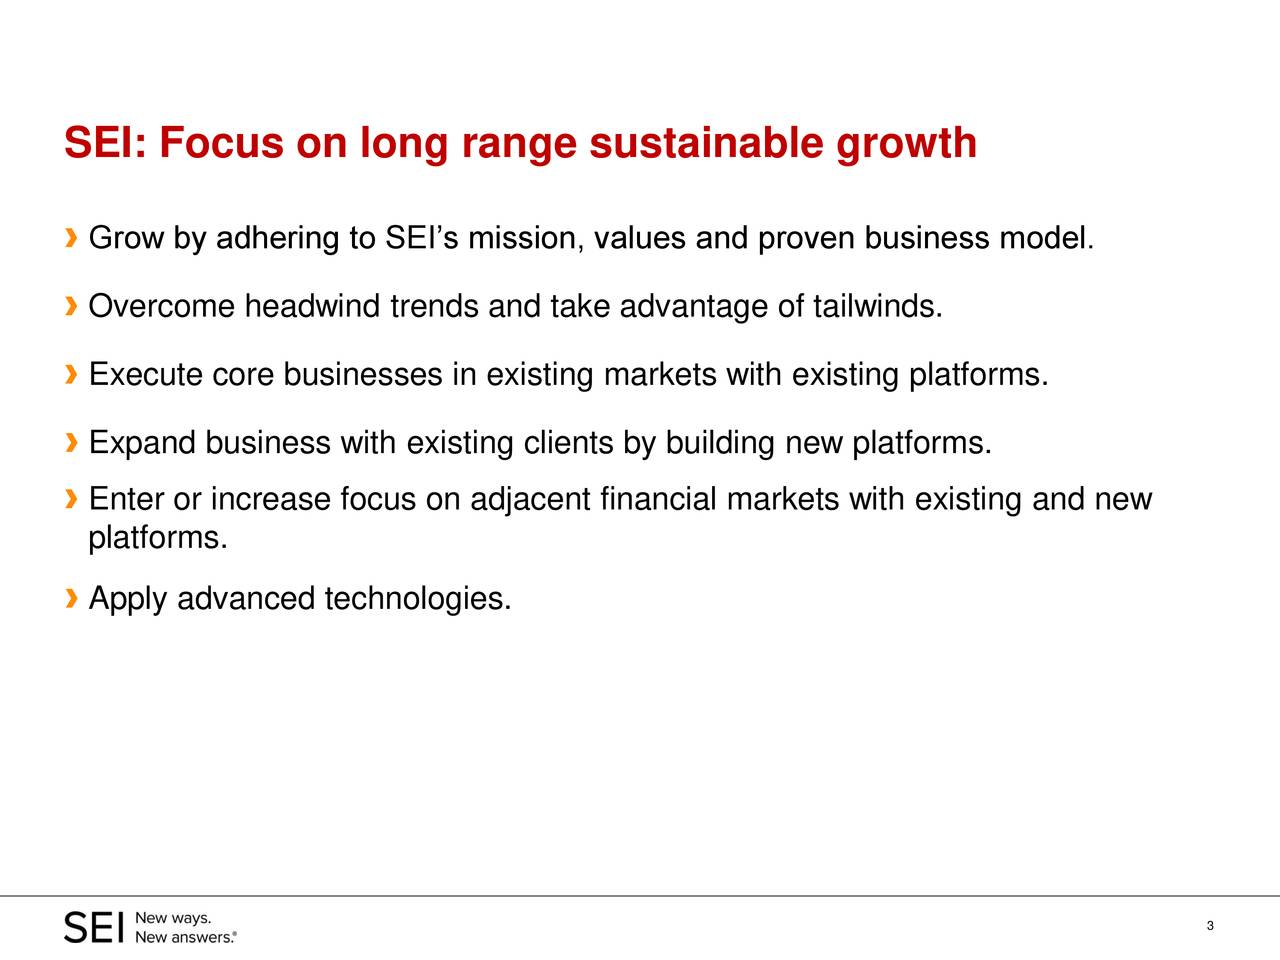 › Grow by adhering to SEI's mission, values and proven business model. › Overcome headwind trends and take advantage of tailwinds. › Execute core businesses in existing markets with existing platforms. › Expand business with existing clients by building new platforms. › Enter or increase focus on adjacent financial markets with existing and new platforms. › Apply advanced technologies. 3